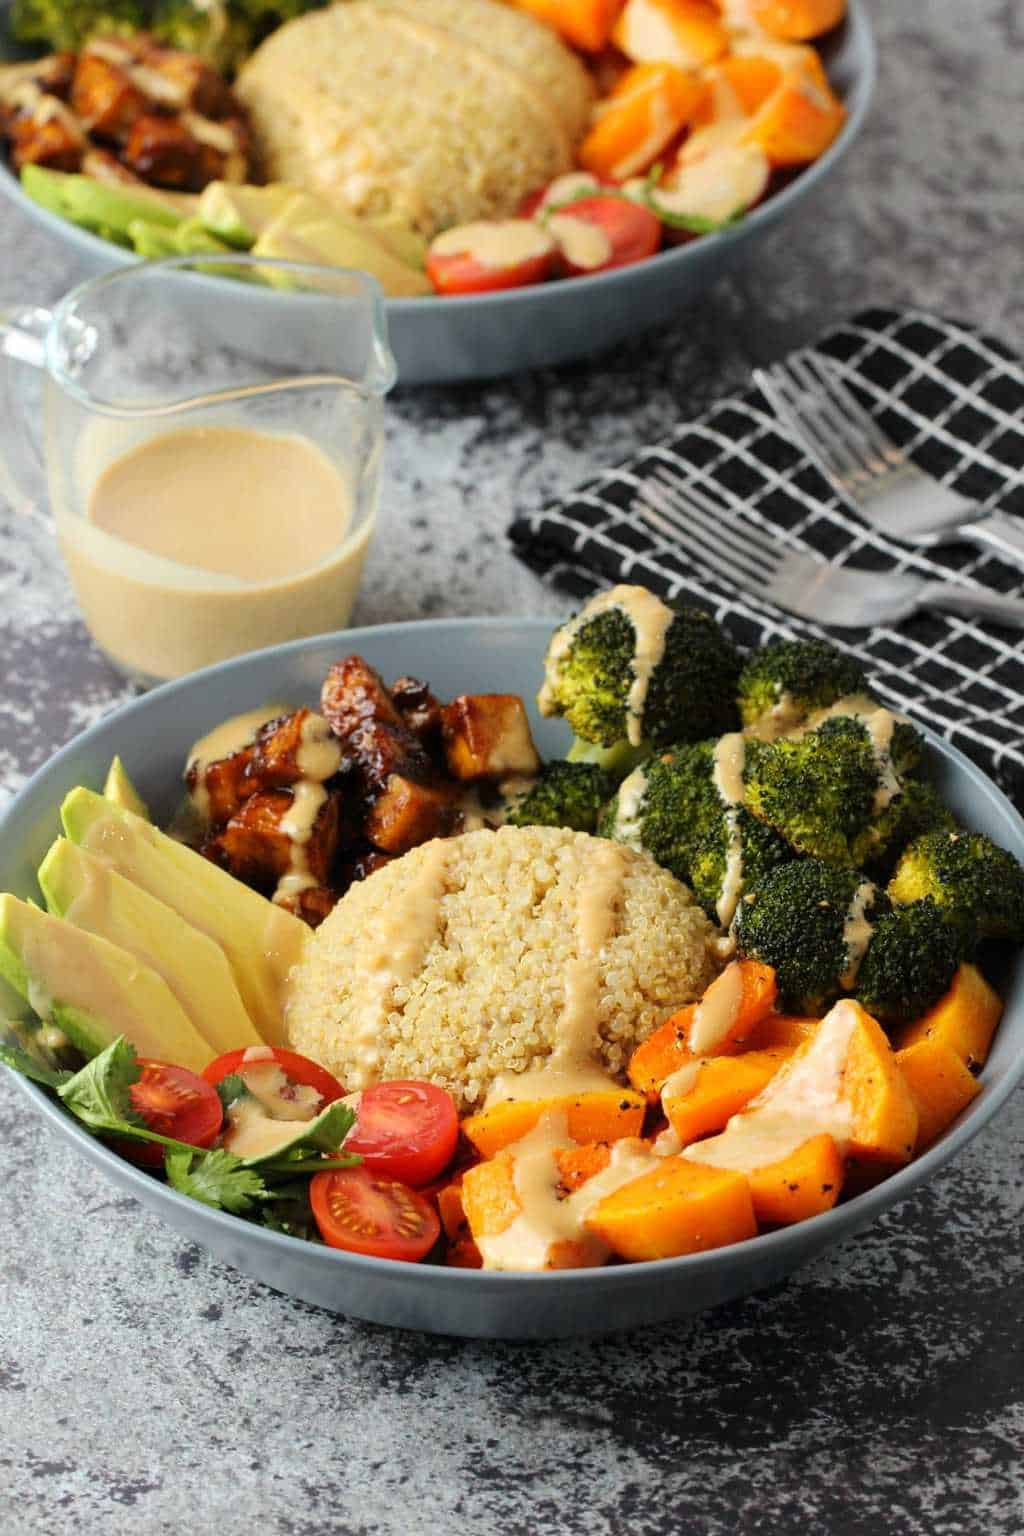 Blue bowl with quinoa, tofu and vegetables.